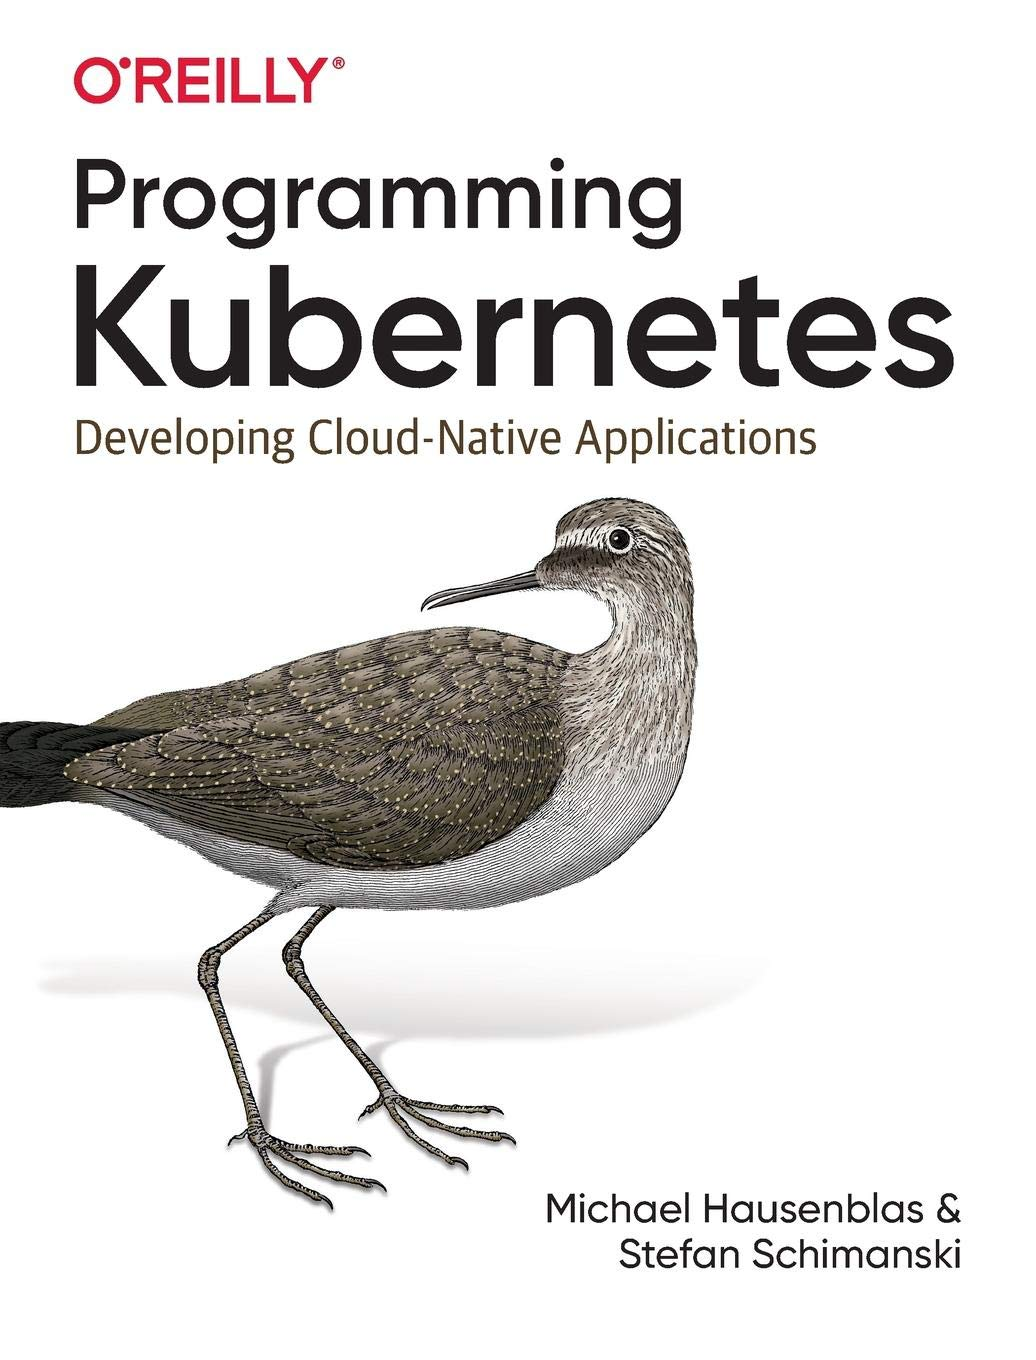 Programming Kubernetes: Developing Cloud-Native Applications by O'Reilly Media